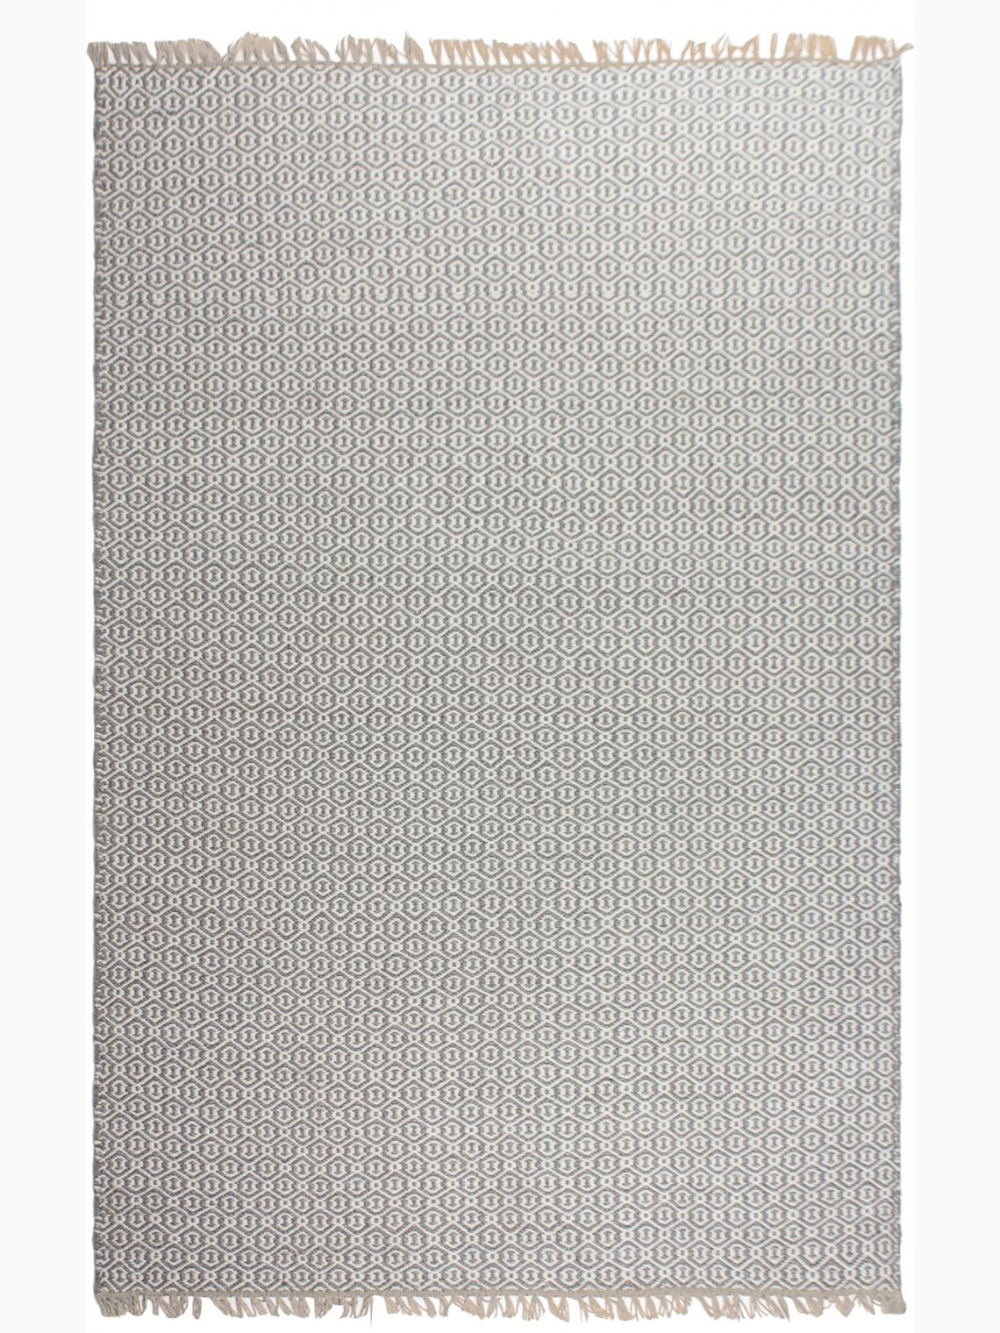 Lancut Grey Indoor Outdoor Pet Polyester Fiber Rug In 2020 Rugs Fab Habitat Indoor Outdoor